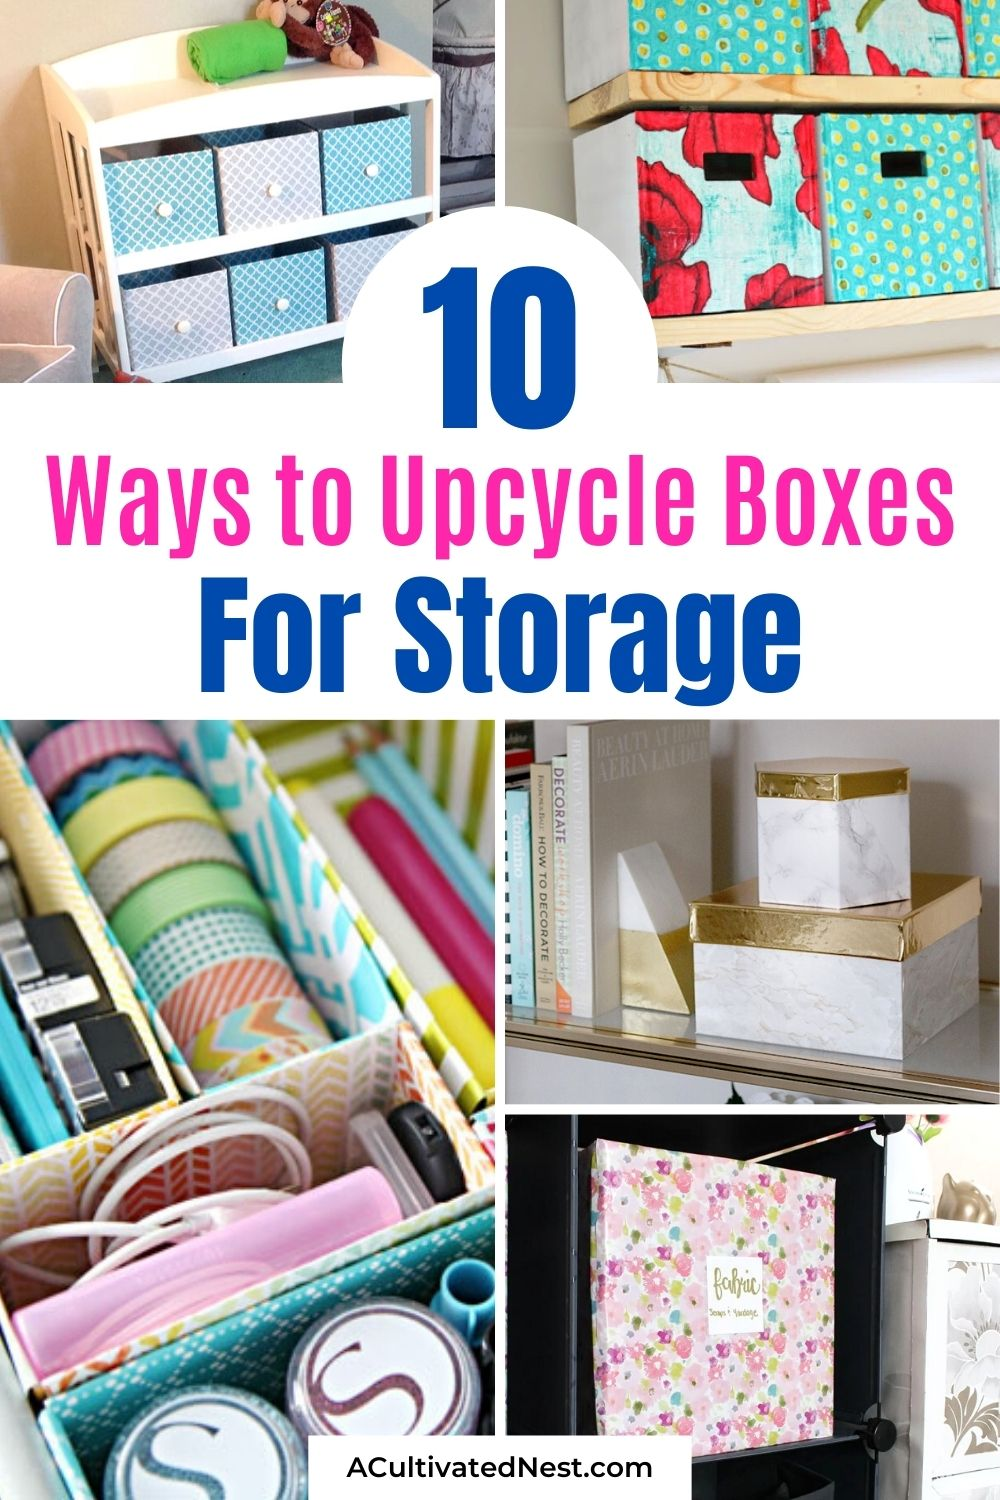 10 Clever Ways to Upcycle Boxes for Storage- An easy way to get your home organized on a budget is to use things you might otherwise throw out and upcycle them instead! For some frugal ideas, check out these clever ways to upcycle boxes for storage!   #organizing #diyOrganization #upcycle #upcycling #ACultivatedNest